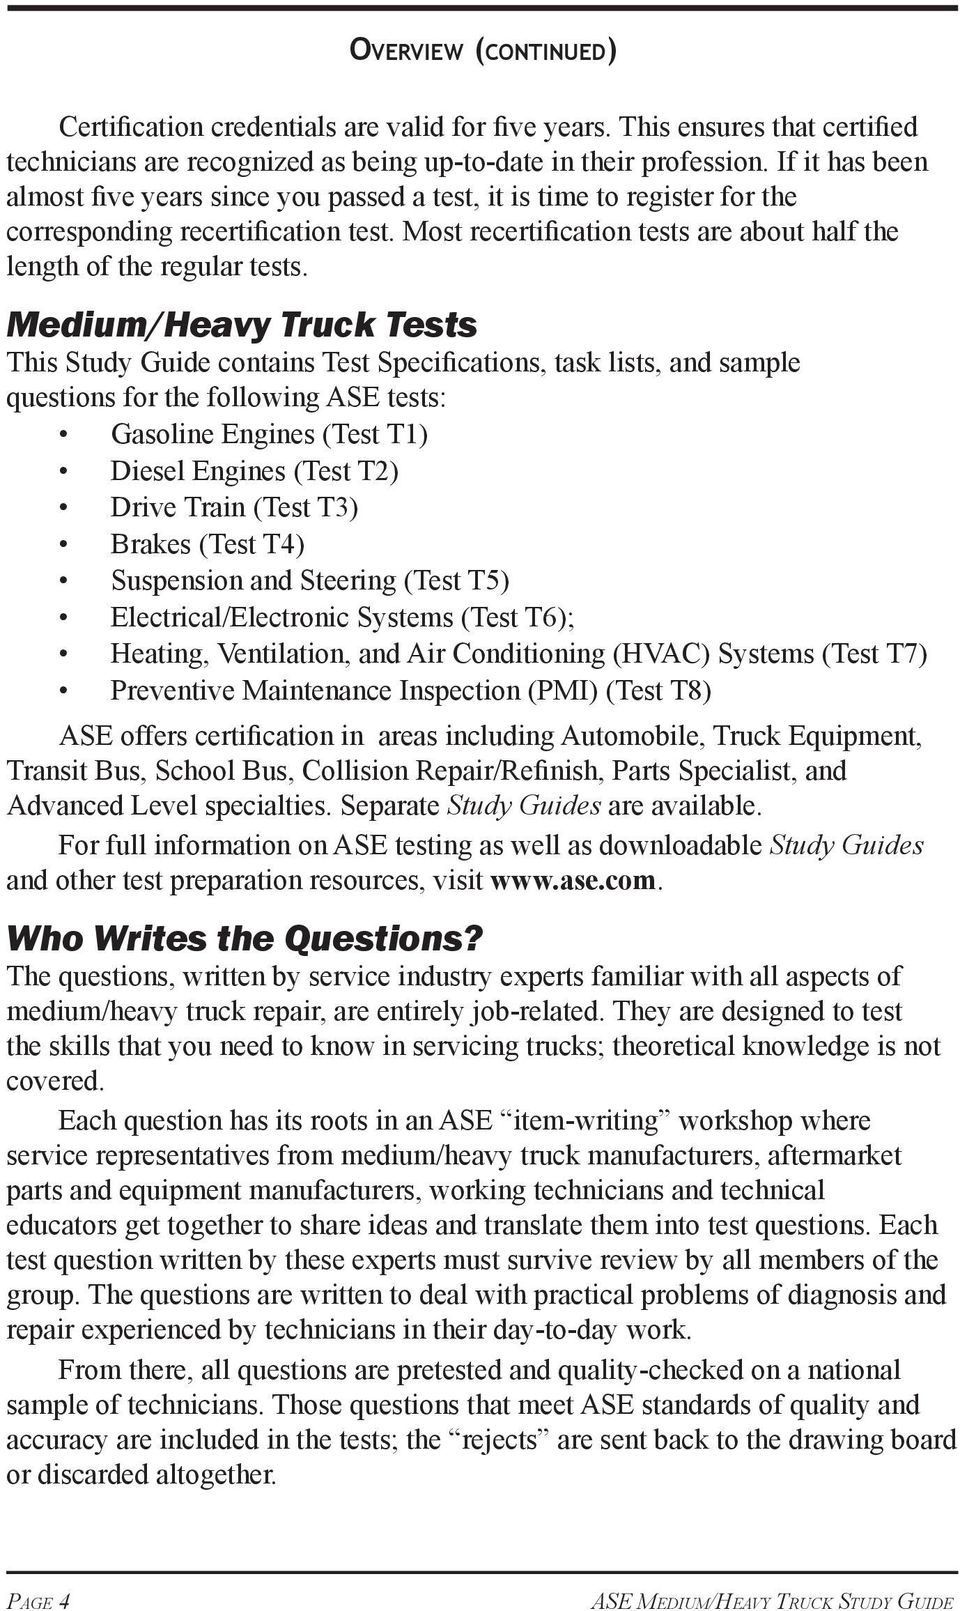 The Official Ase Study Guide Ase Mediumheavy Truck Tests Pdf